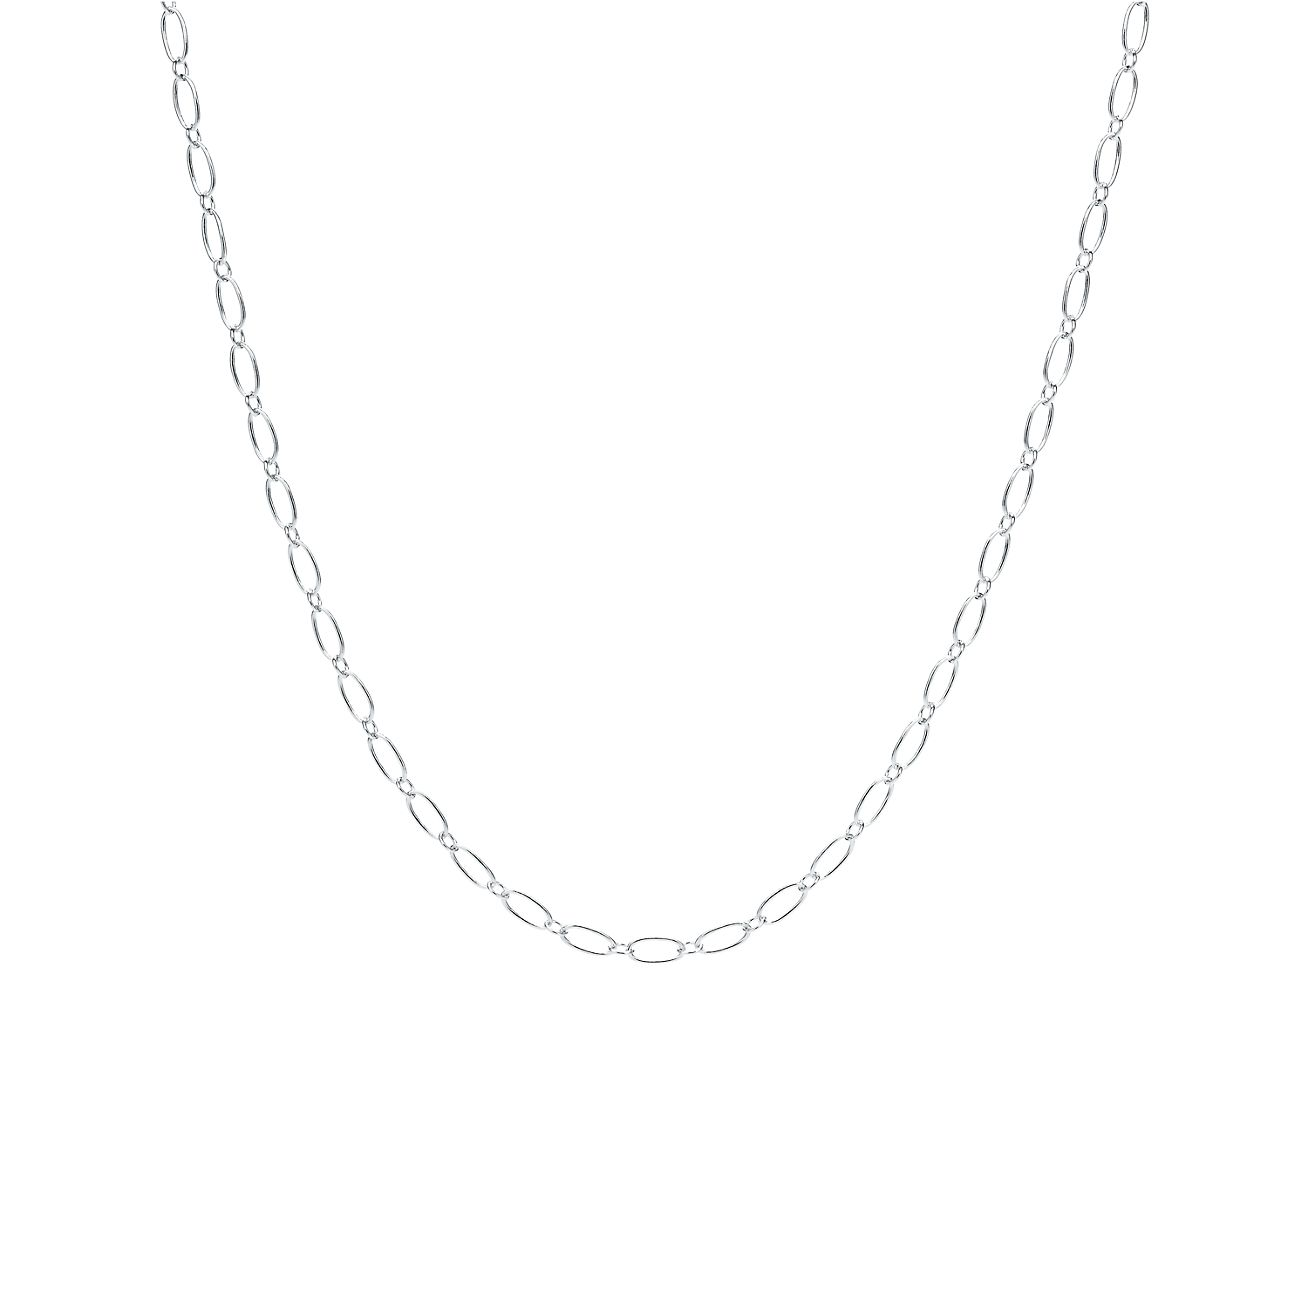 jane diaz zoom gold oval chain delicate link designers in dia necklace product